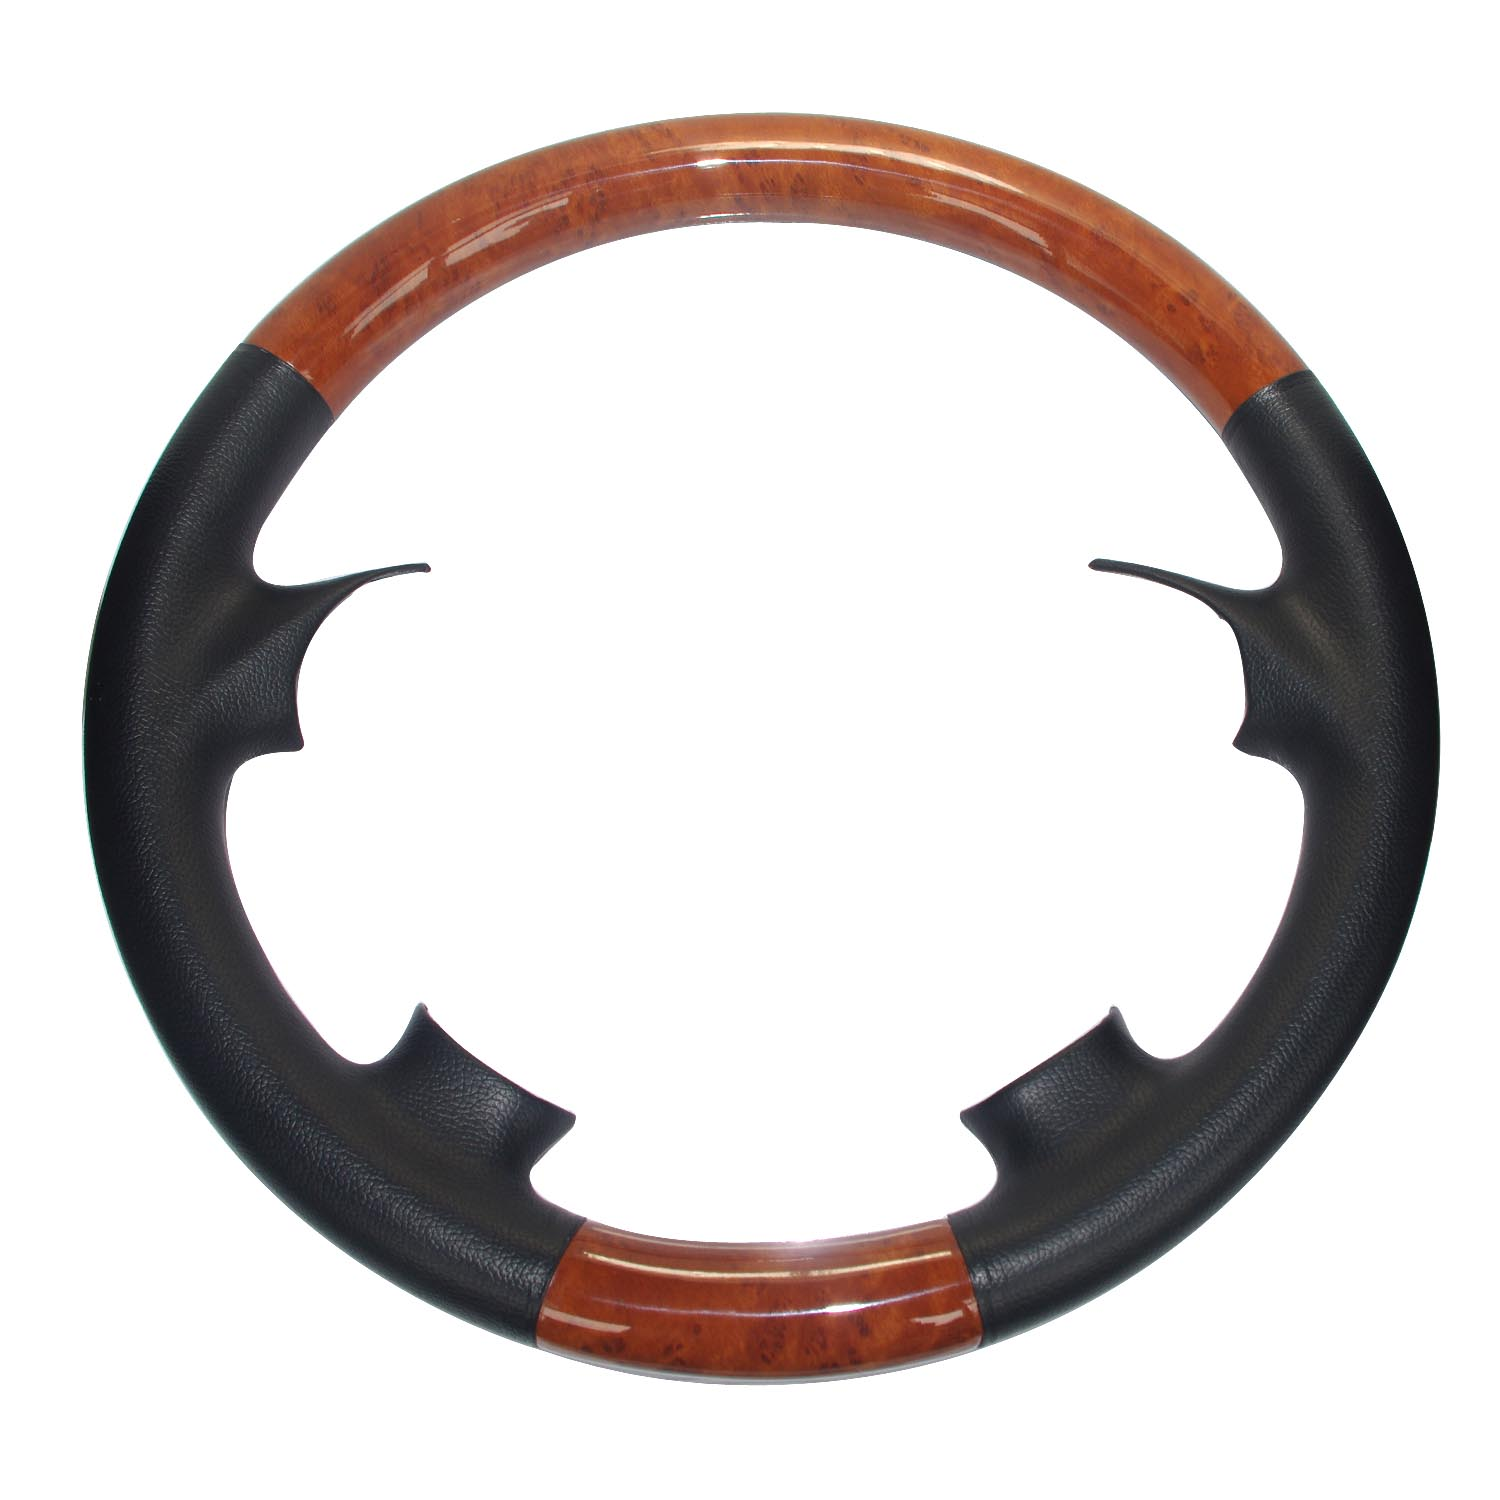 Black Leather Light Brown Wood Steering Wheel Cover For Mercedes Benz 1998-2005 W163 ML M 270 ML320 ML350 ML430 ML500 ML55 AMG